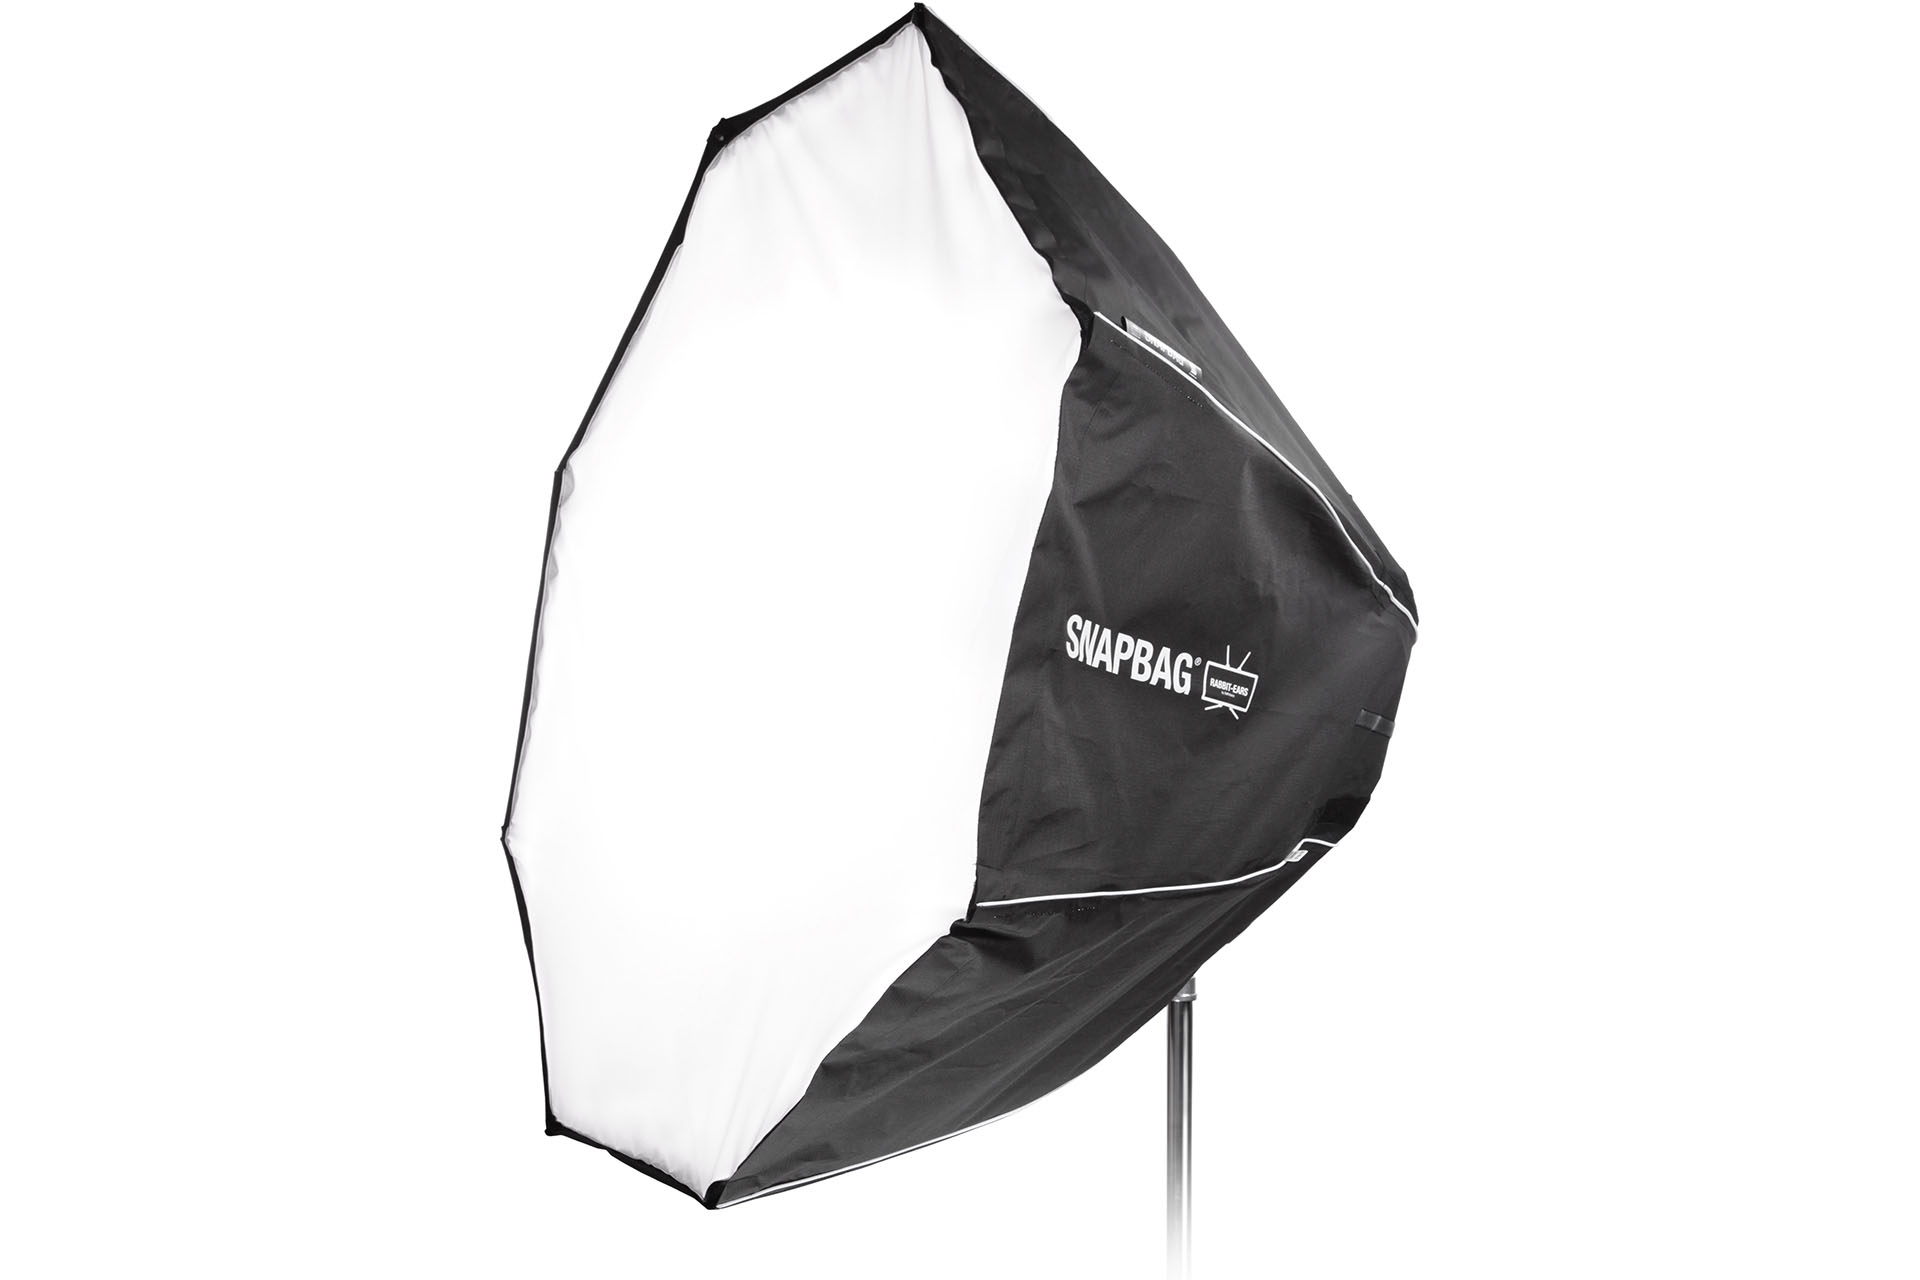 OCTA 5 foldable Snapbag 1,5m diameter (requires Rabbit Ears frame mount)